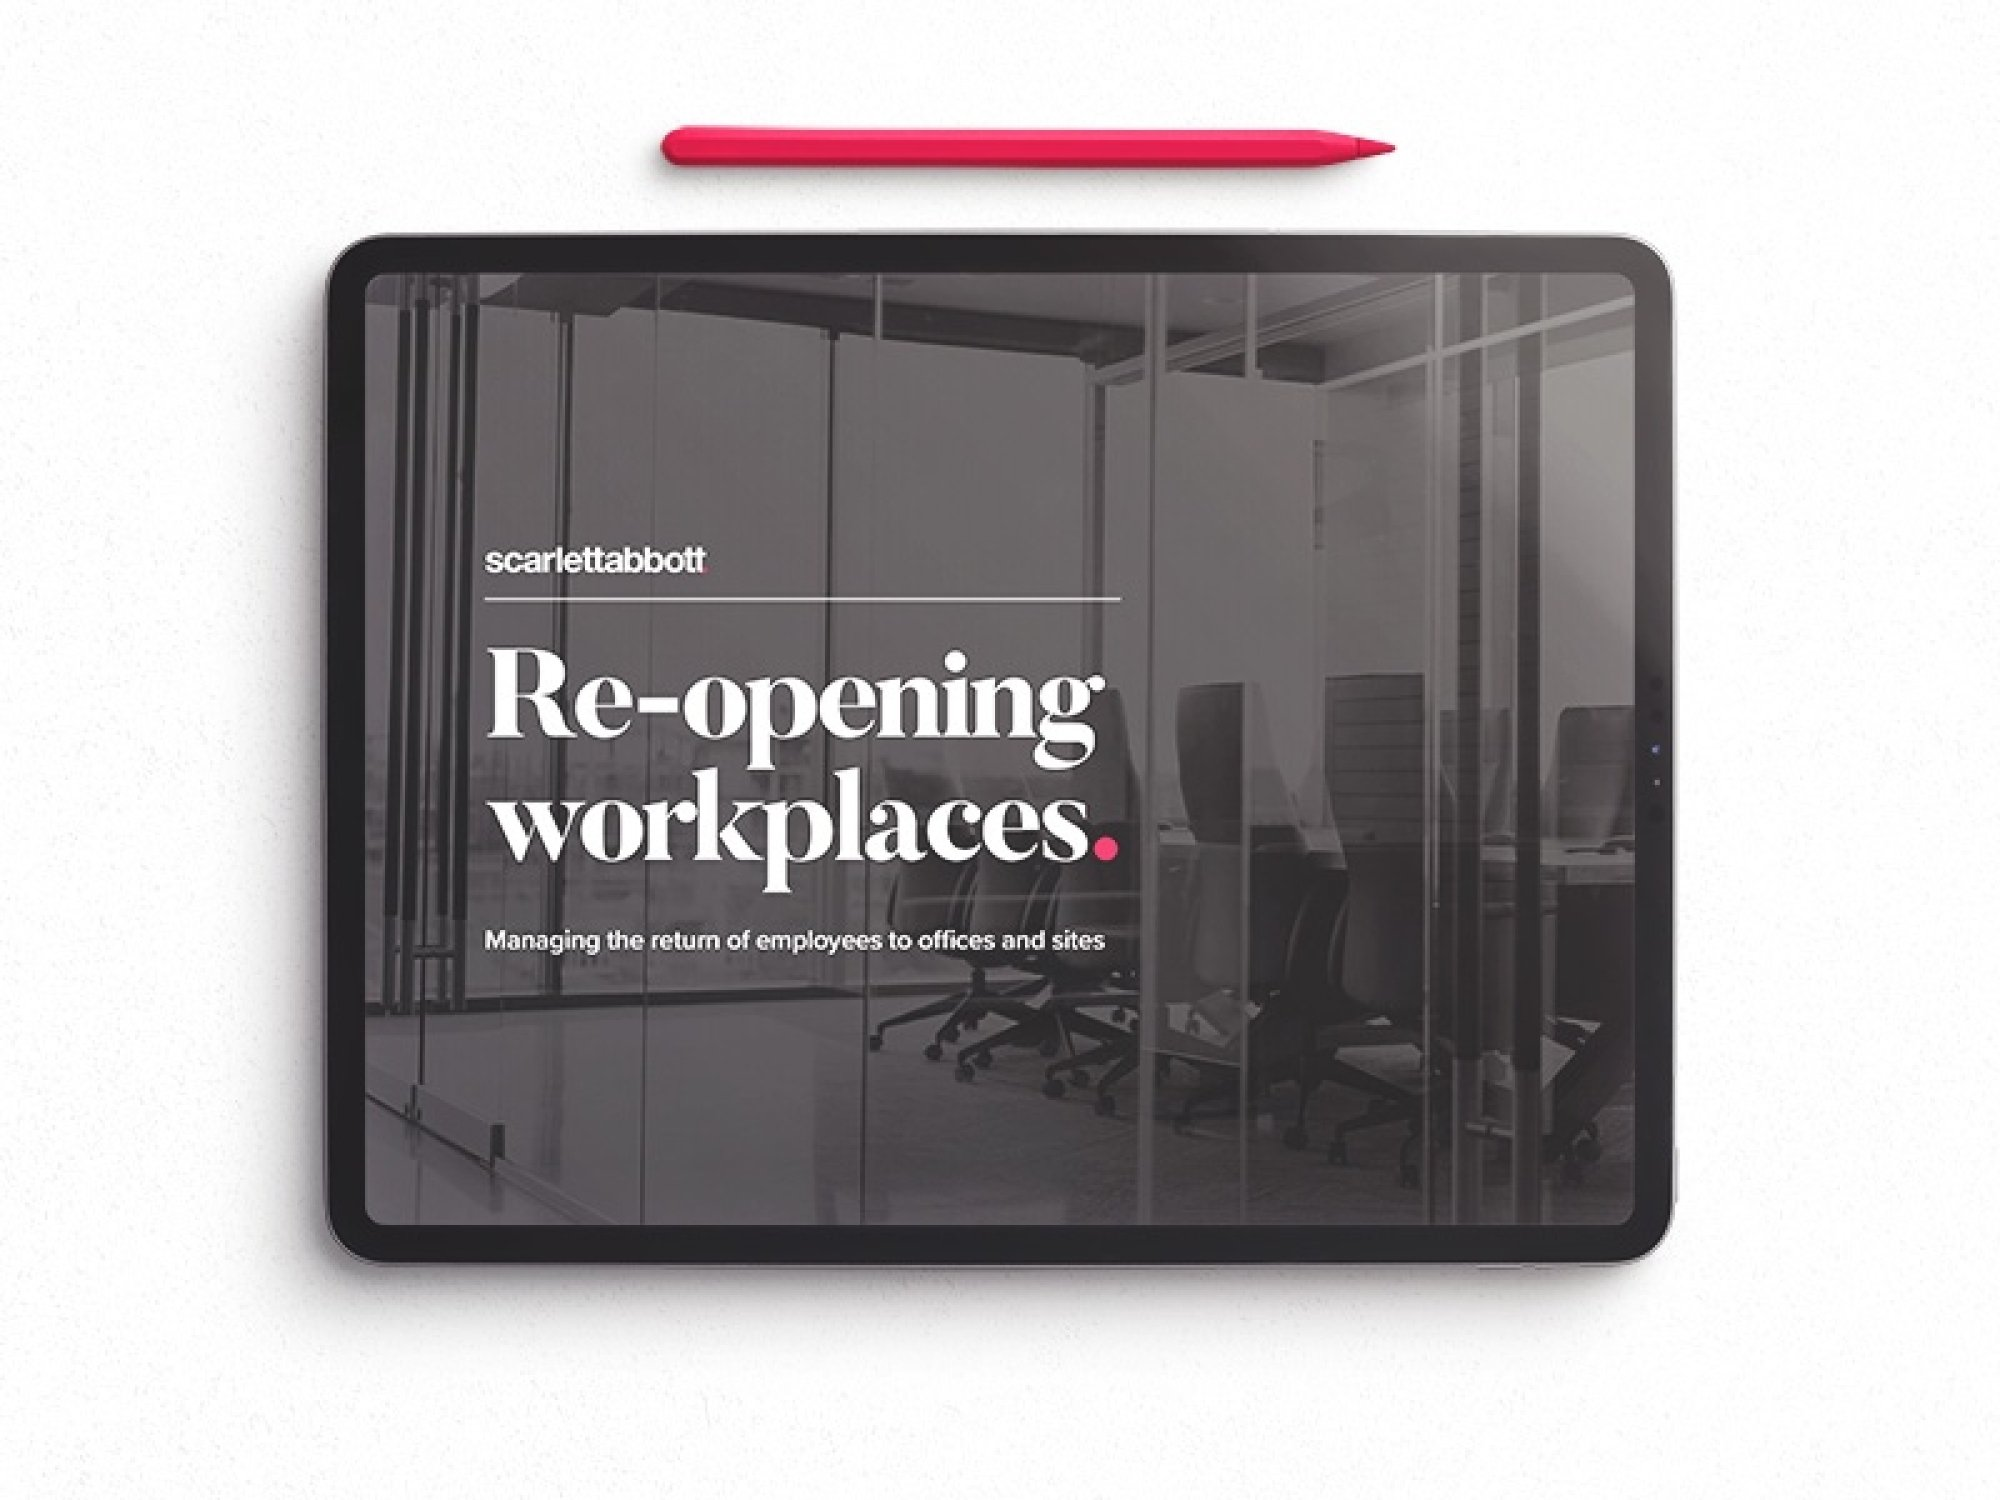 Reopening workplaces website thumbnail 800x600 72dpi 1